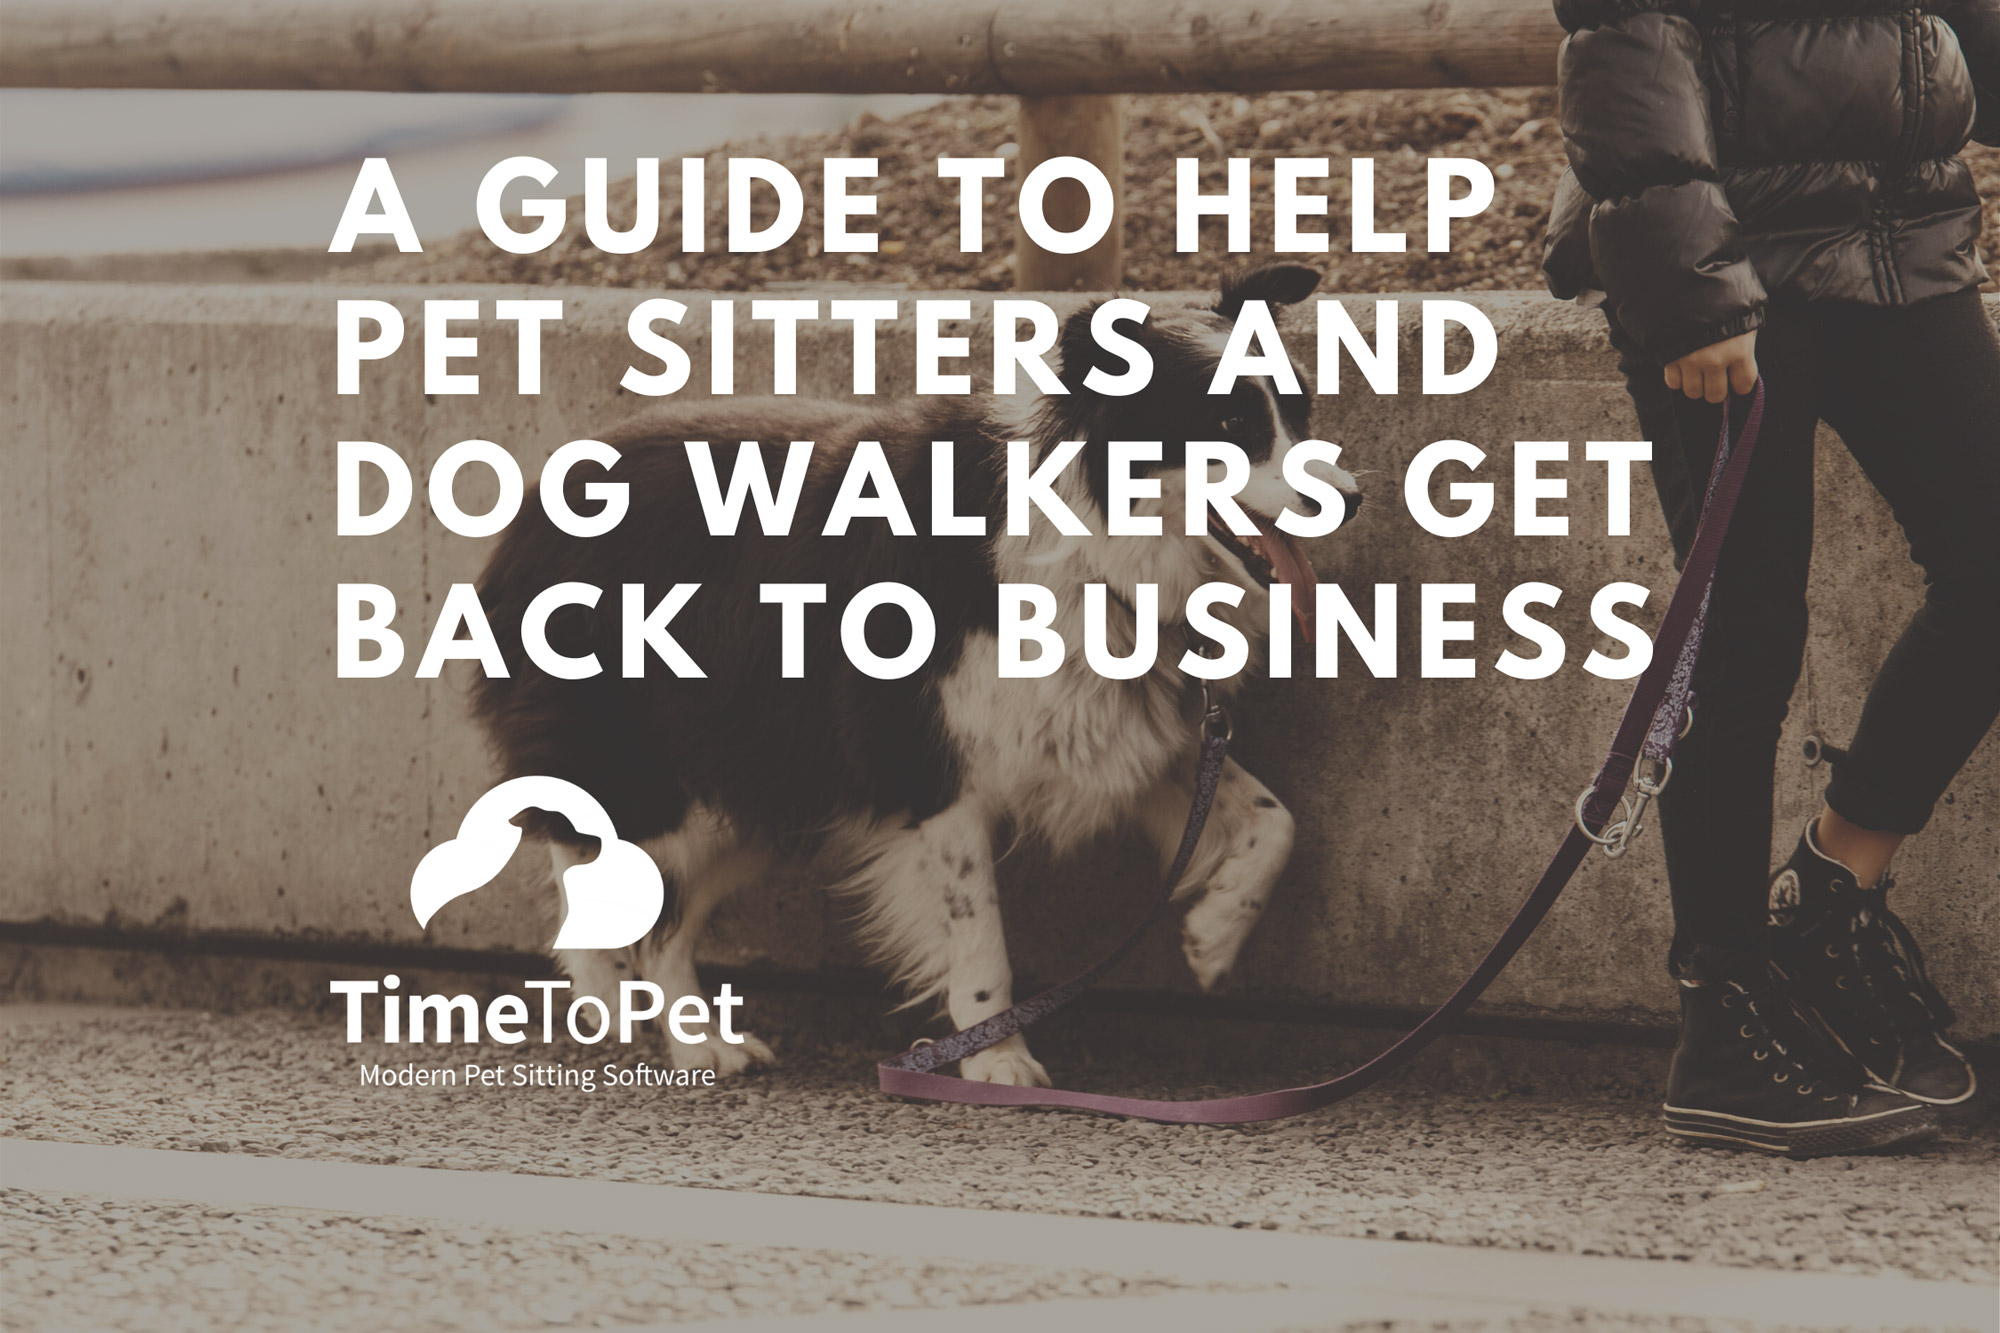 Guide-to-help-pet-sitters-and-dog-walkers